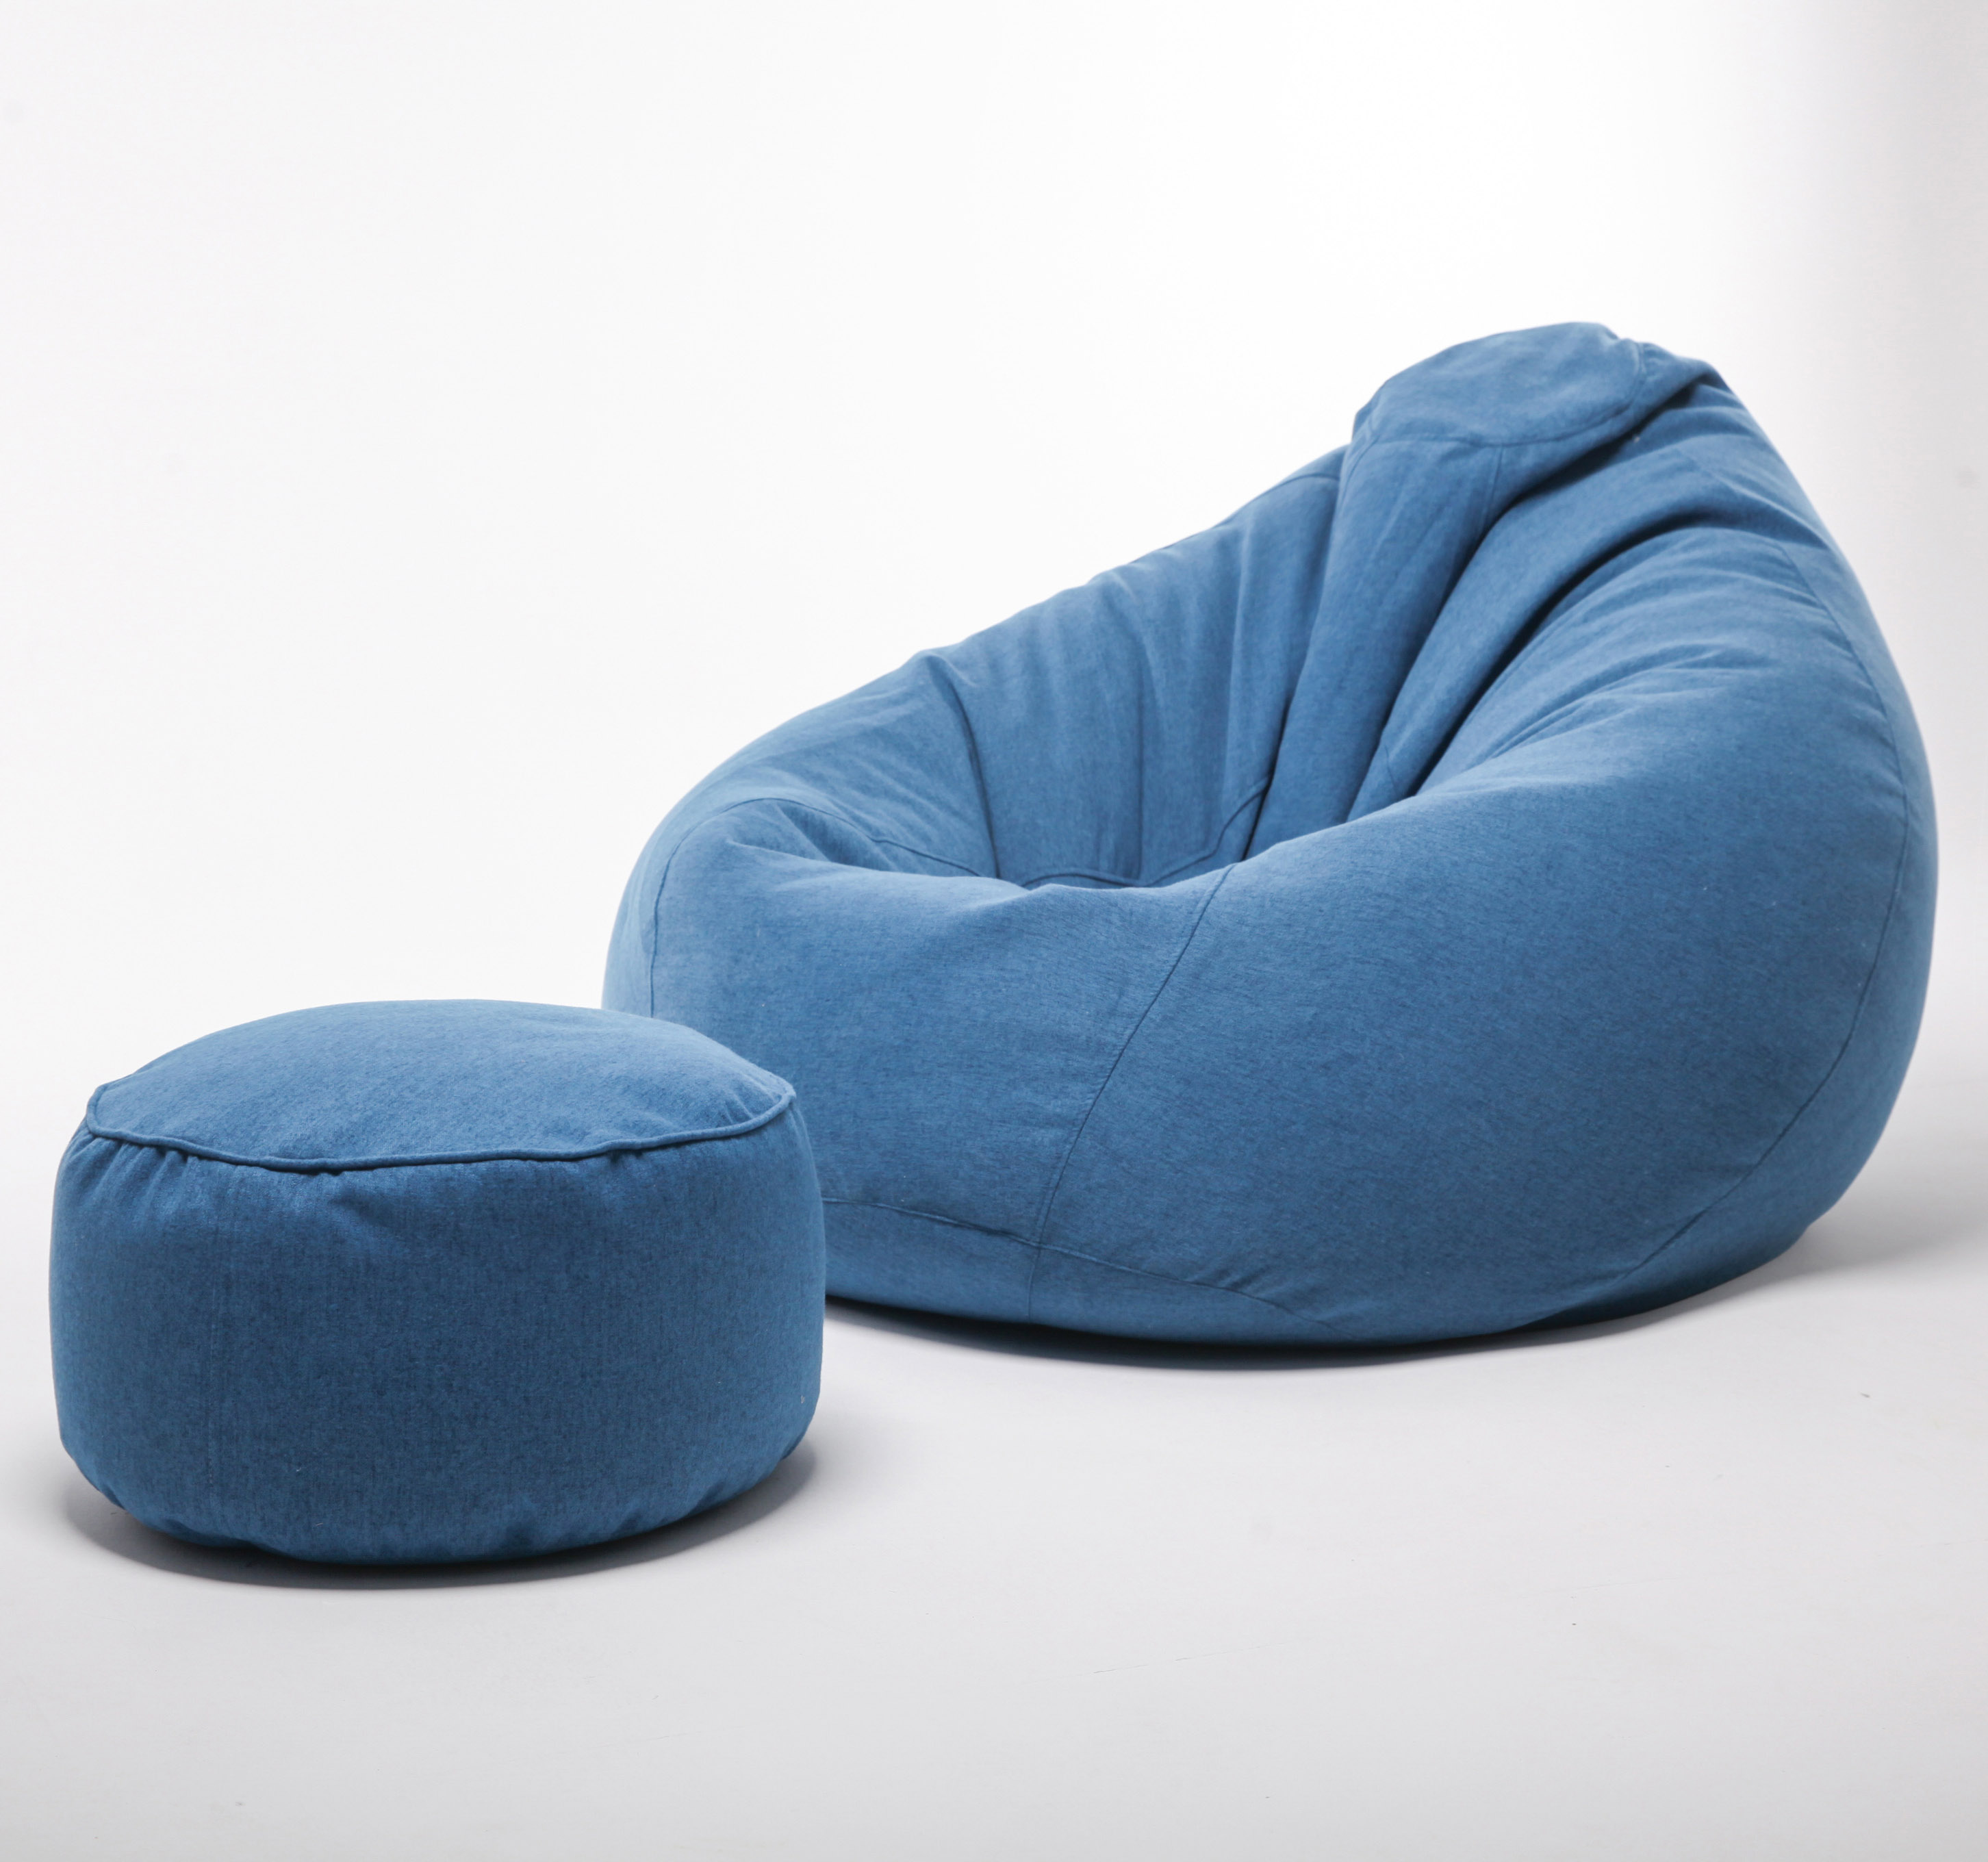 Cheap customized wholesale blue lazy boy outdoor indoor without filling oversized lounge large size foam xxl bean bag chairs